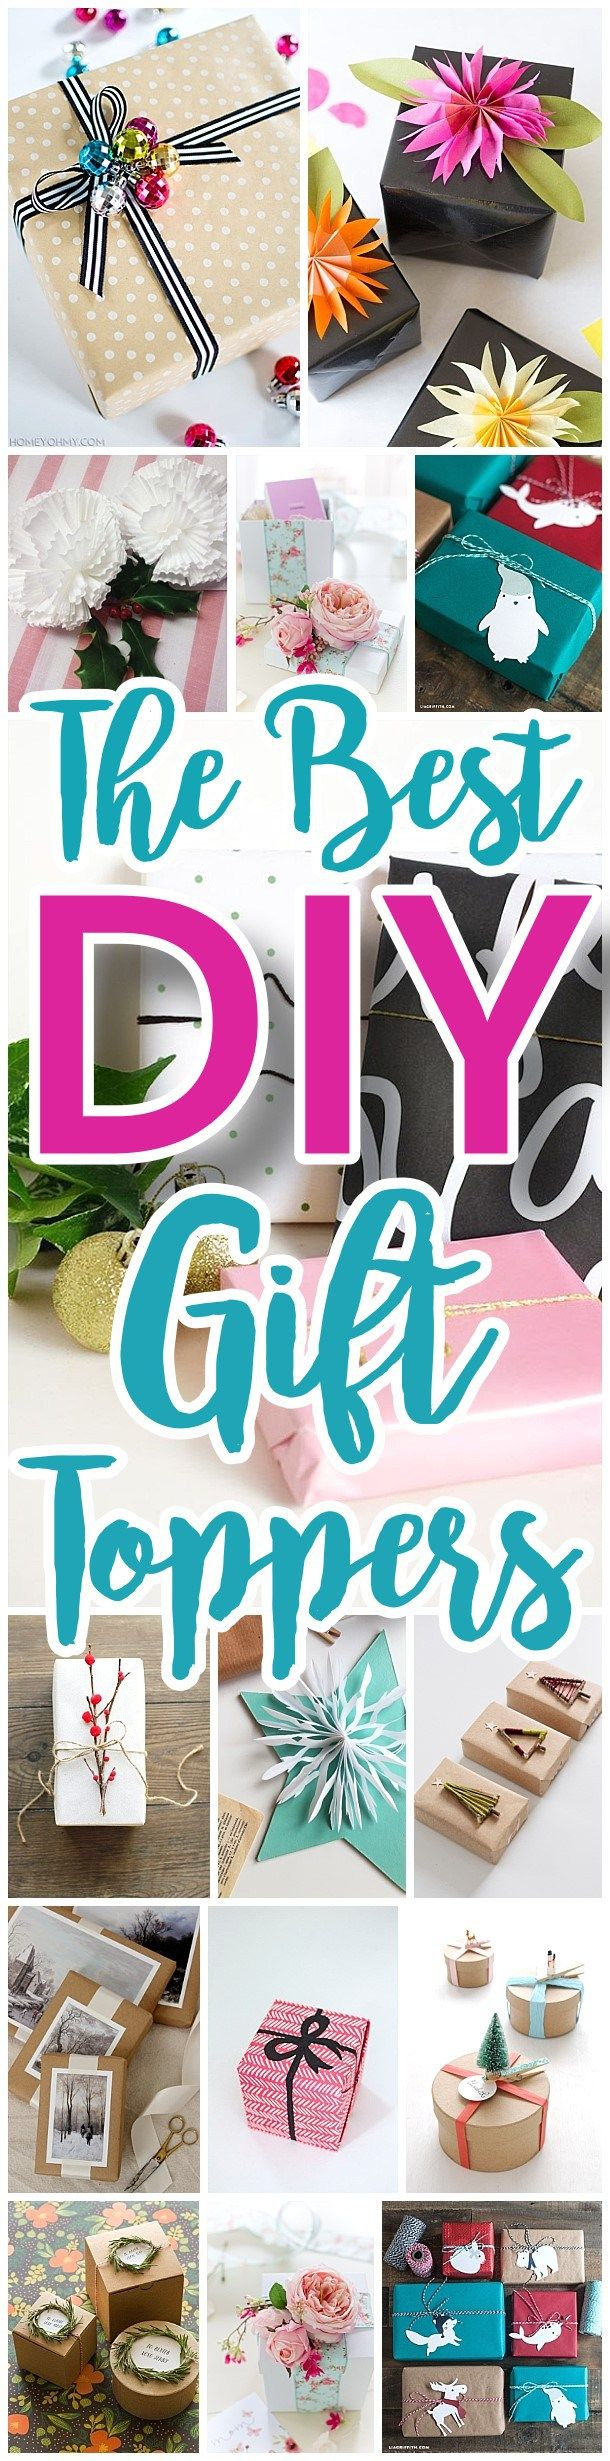 Diy gifts do it yourself gift toppers tutorials fun inexpensive do it yourself gift toppers tutorials fun inexpensive and easy handmade ideas solutioingenieria Image collections